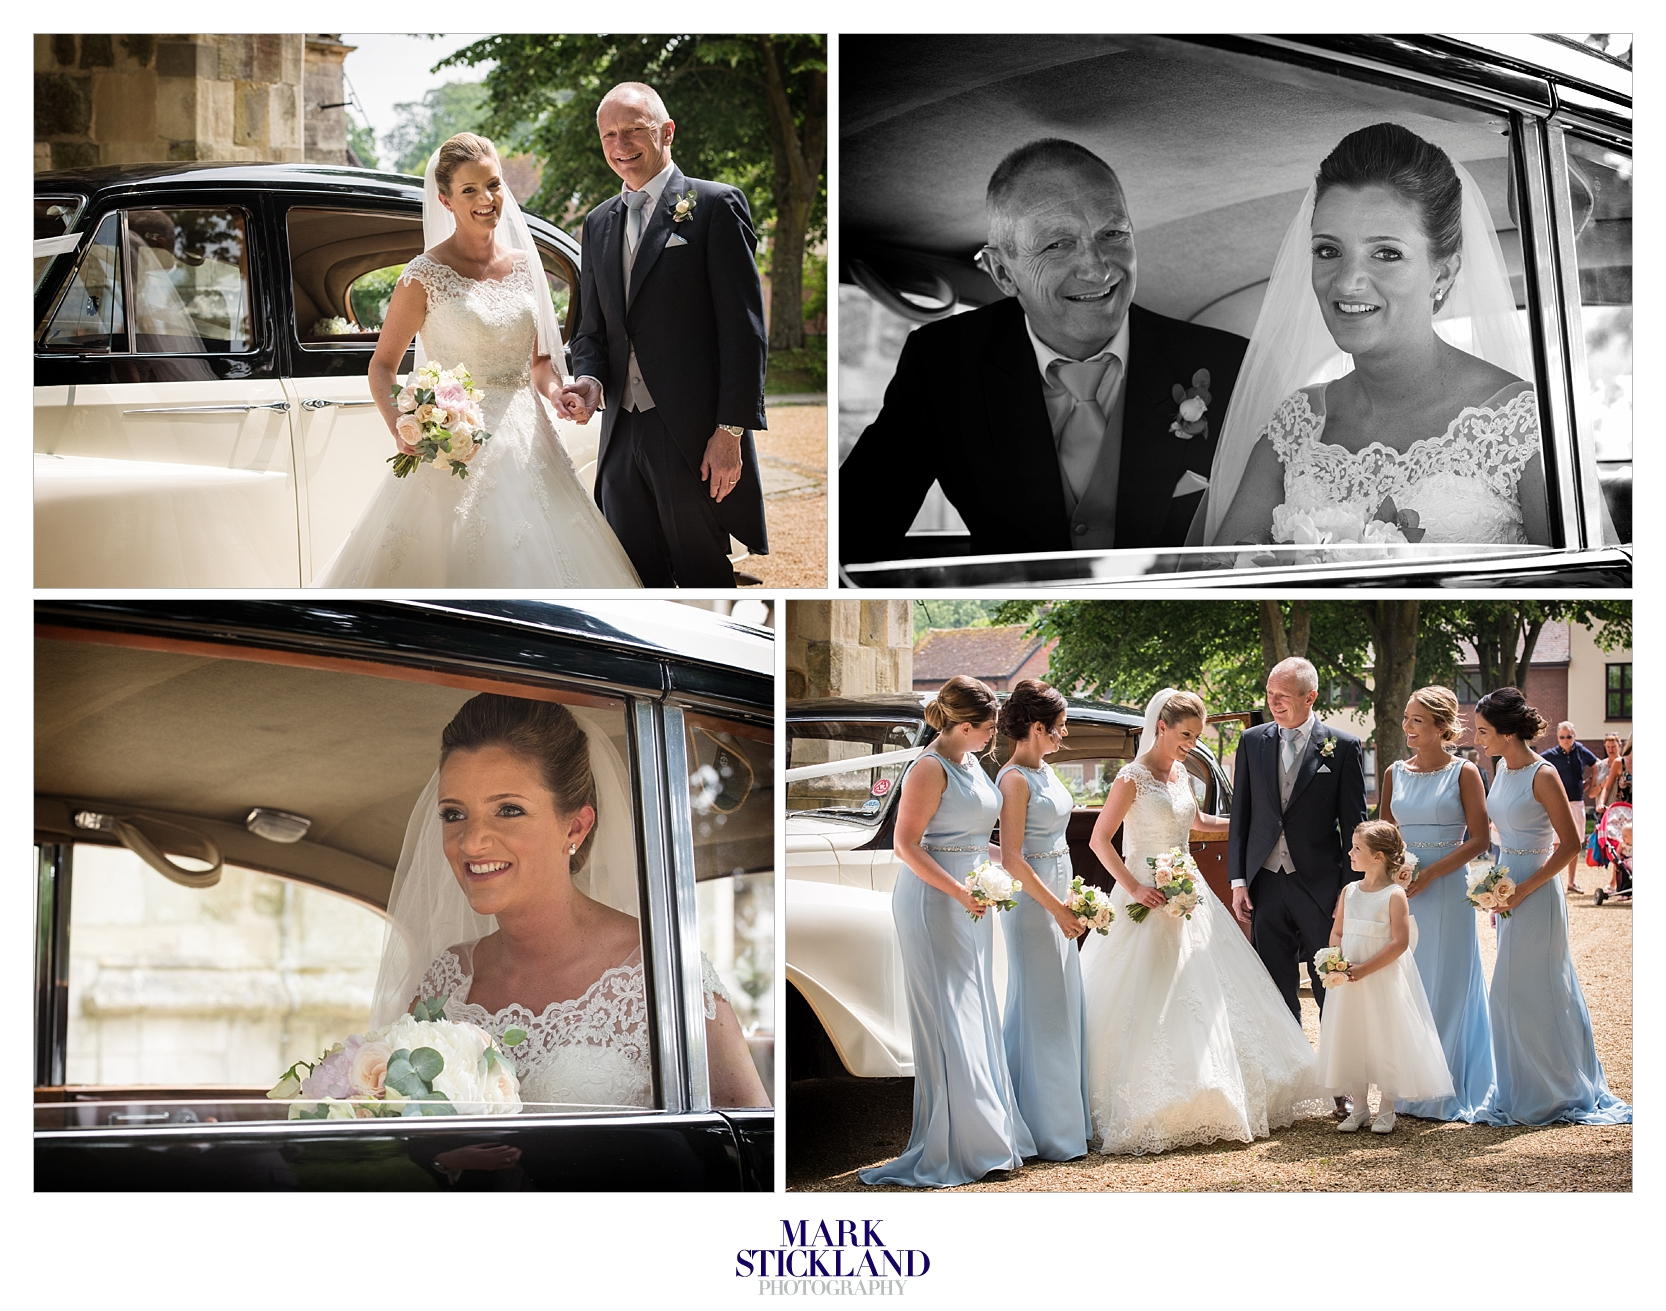 008.deans_court_wedding_wimborne_dorset